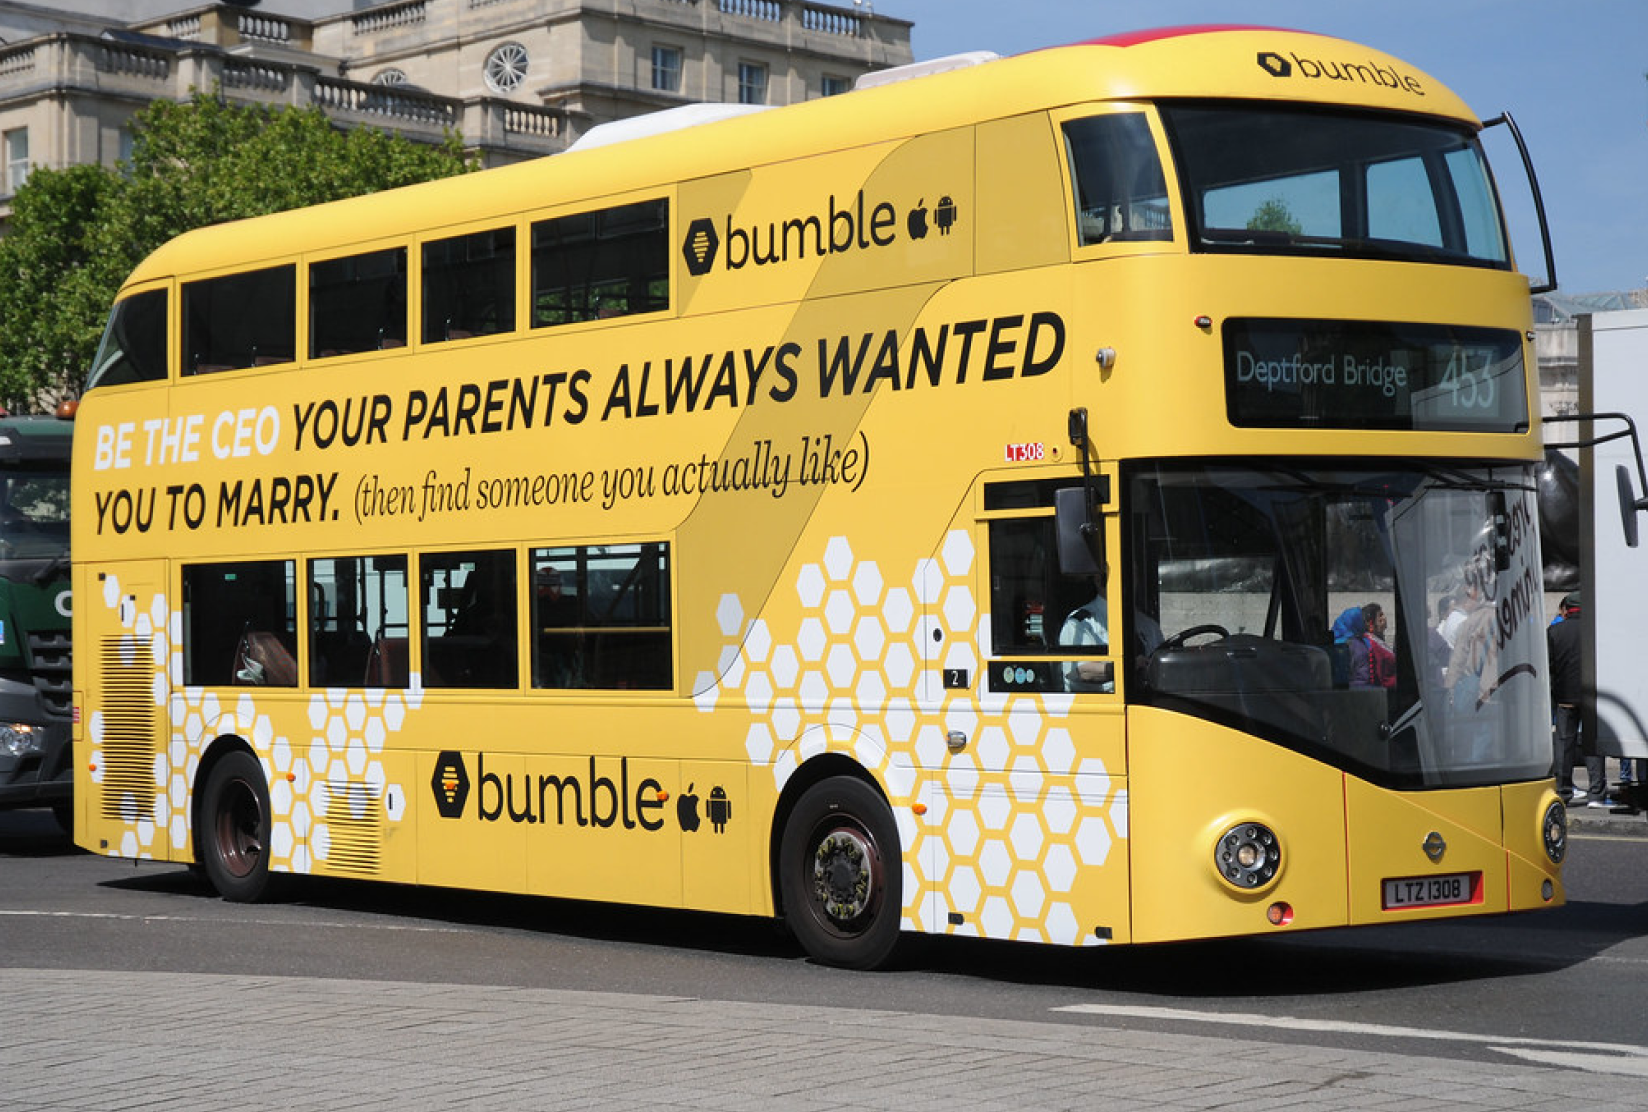 bumble marketing bus campaign